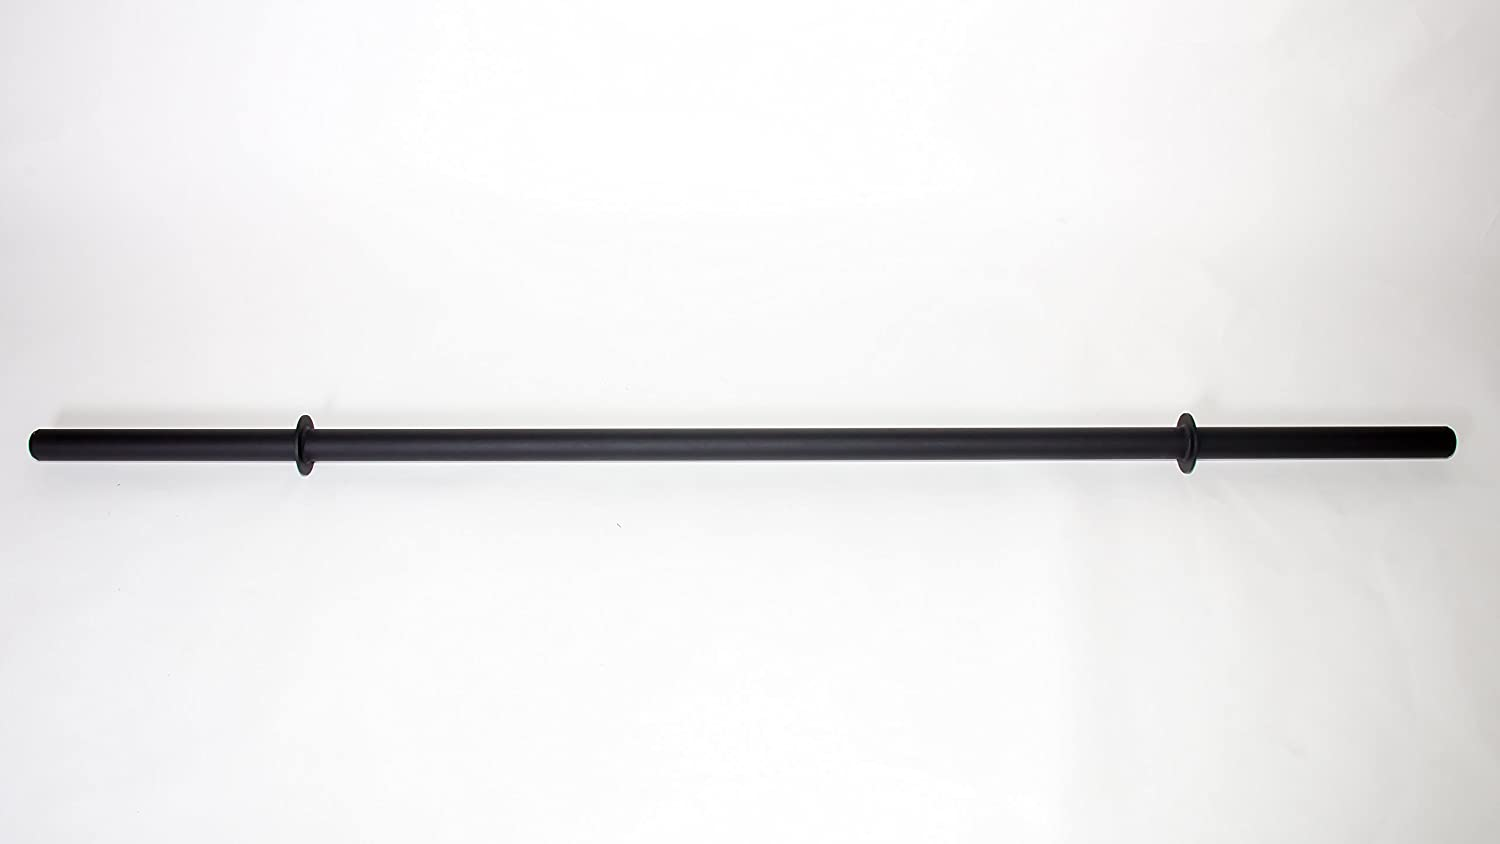 Northern Lights Olympic Axle Bar 60 Stubby Real 2 Diameter